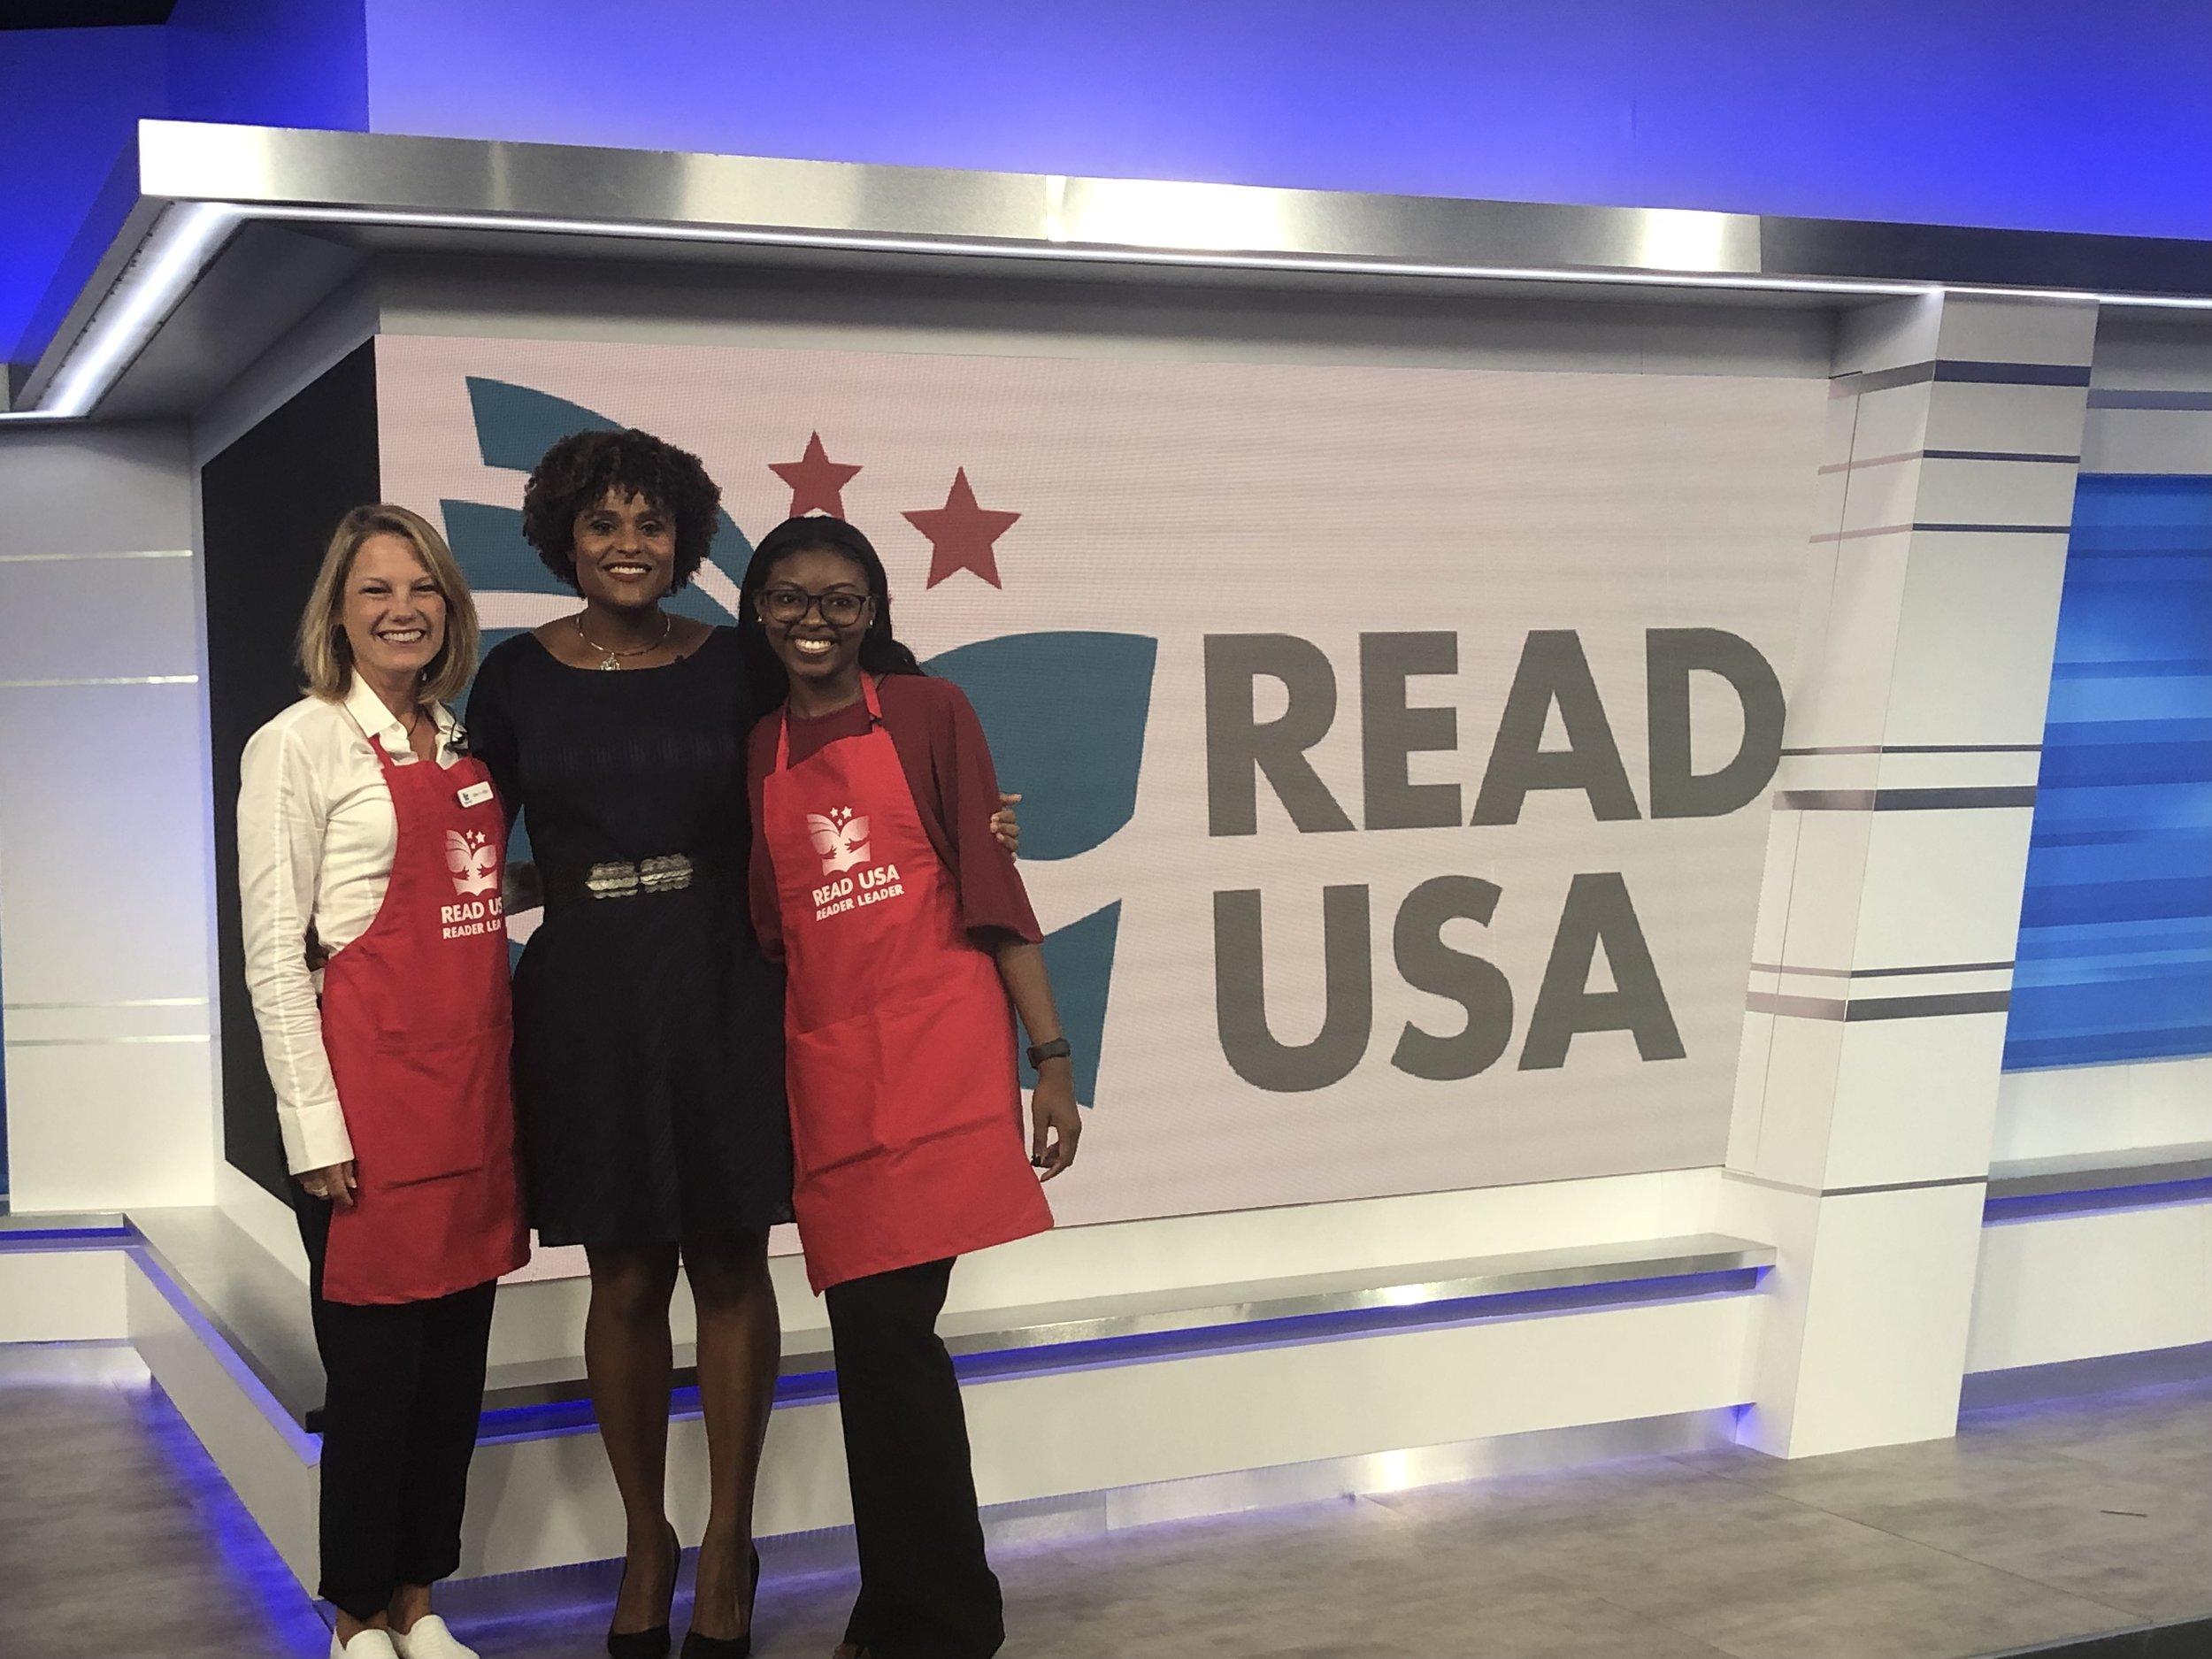 Student from the first READ USA Book Fair in 2011 discusses the impact of the program as she prepares to graduate with honors from high school  News4Jax/WJXT  5/26/2019